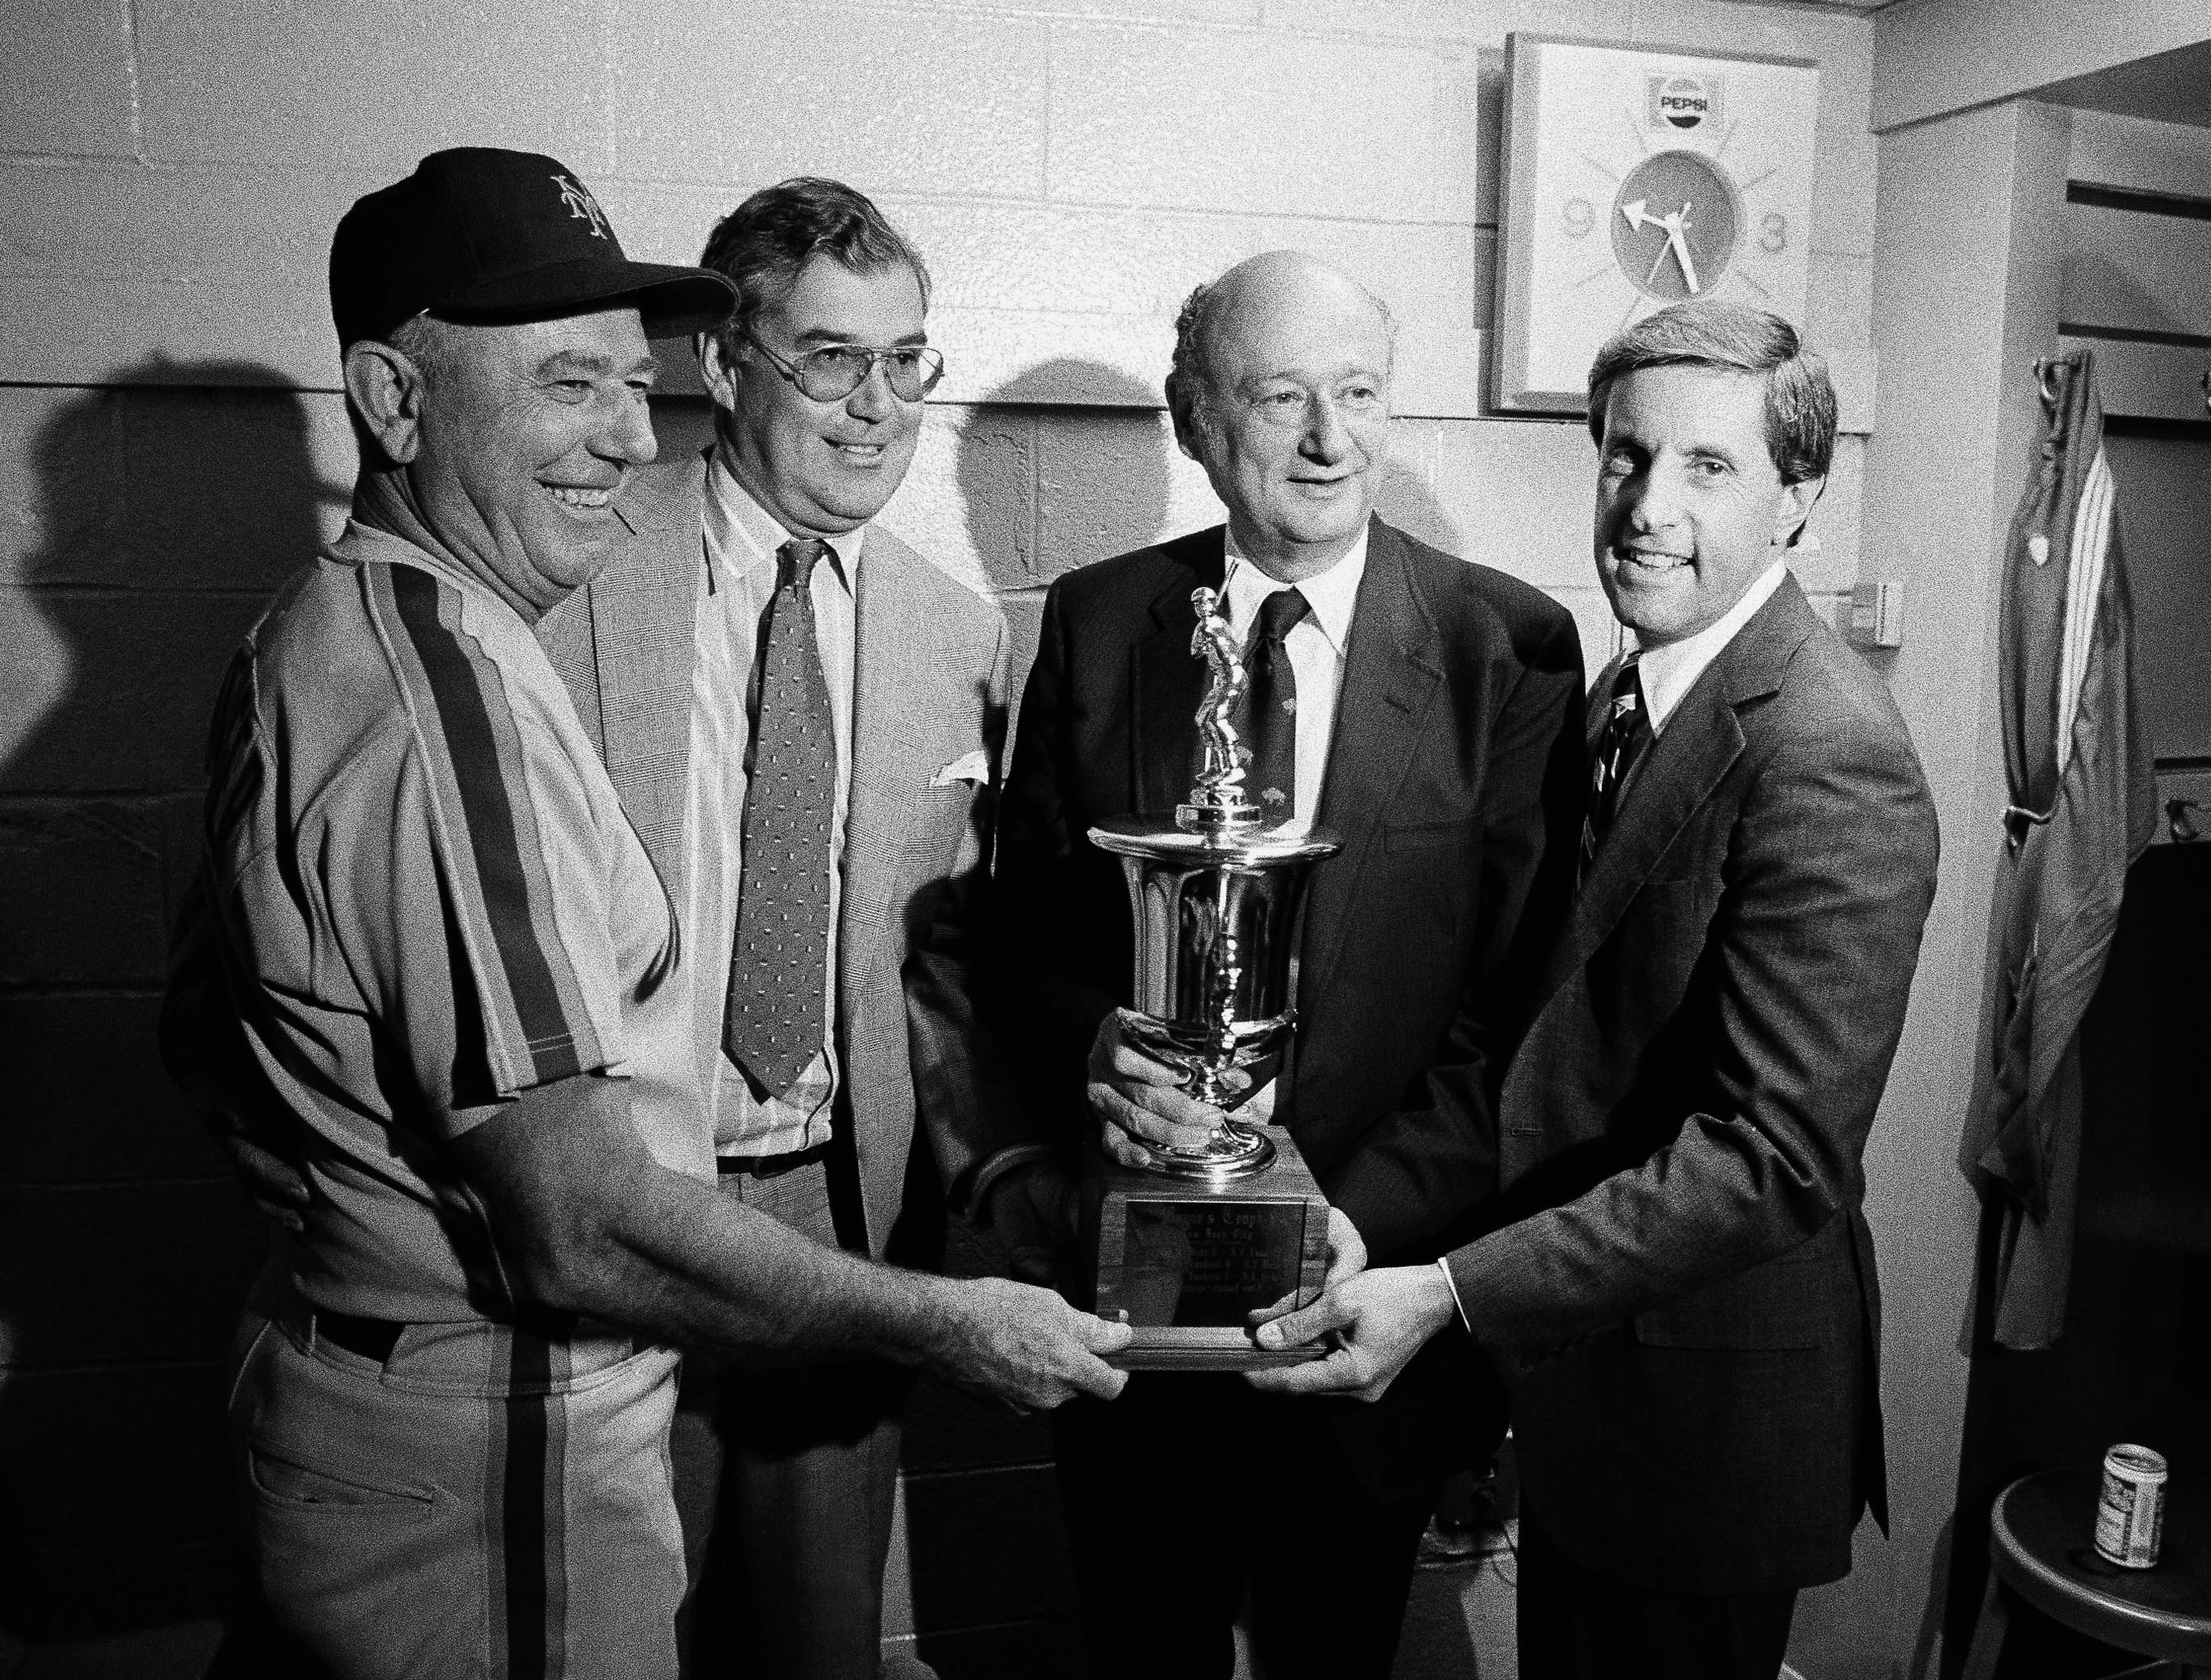 FILE - In this May 27, 1982, file photo, New York Mets management poses with New York City mayor Edward Koch and the Mayor's Trophy in the locker room at Yankee Stadium in New York after the Mets defeated the New York Yankees in an exhibition baseball gam